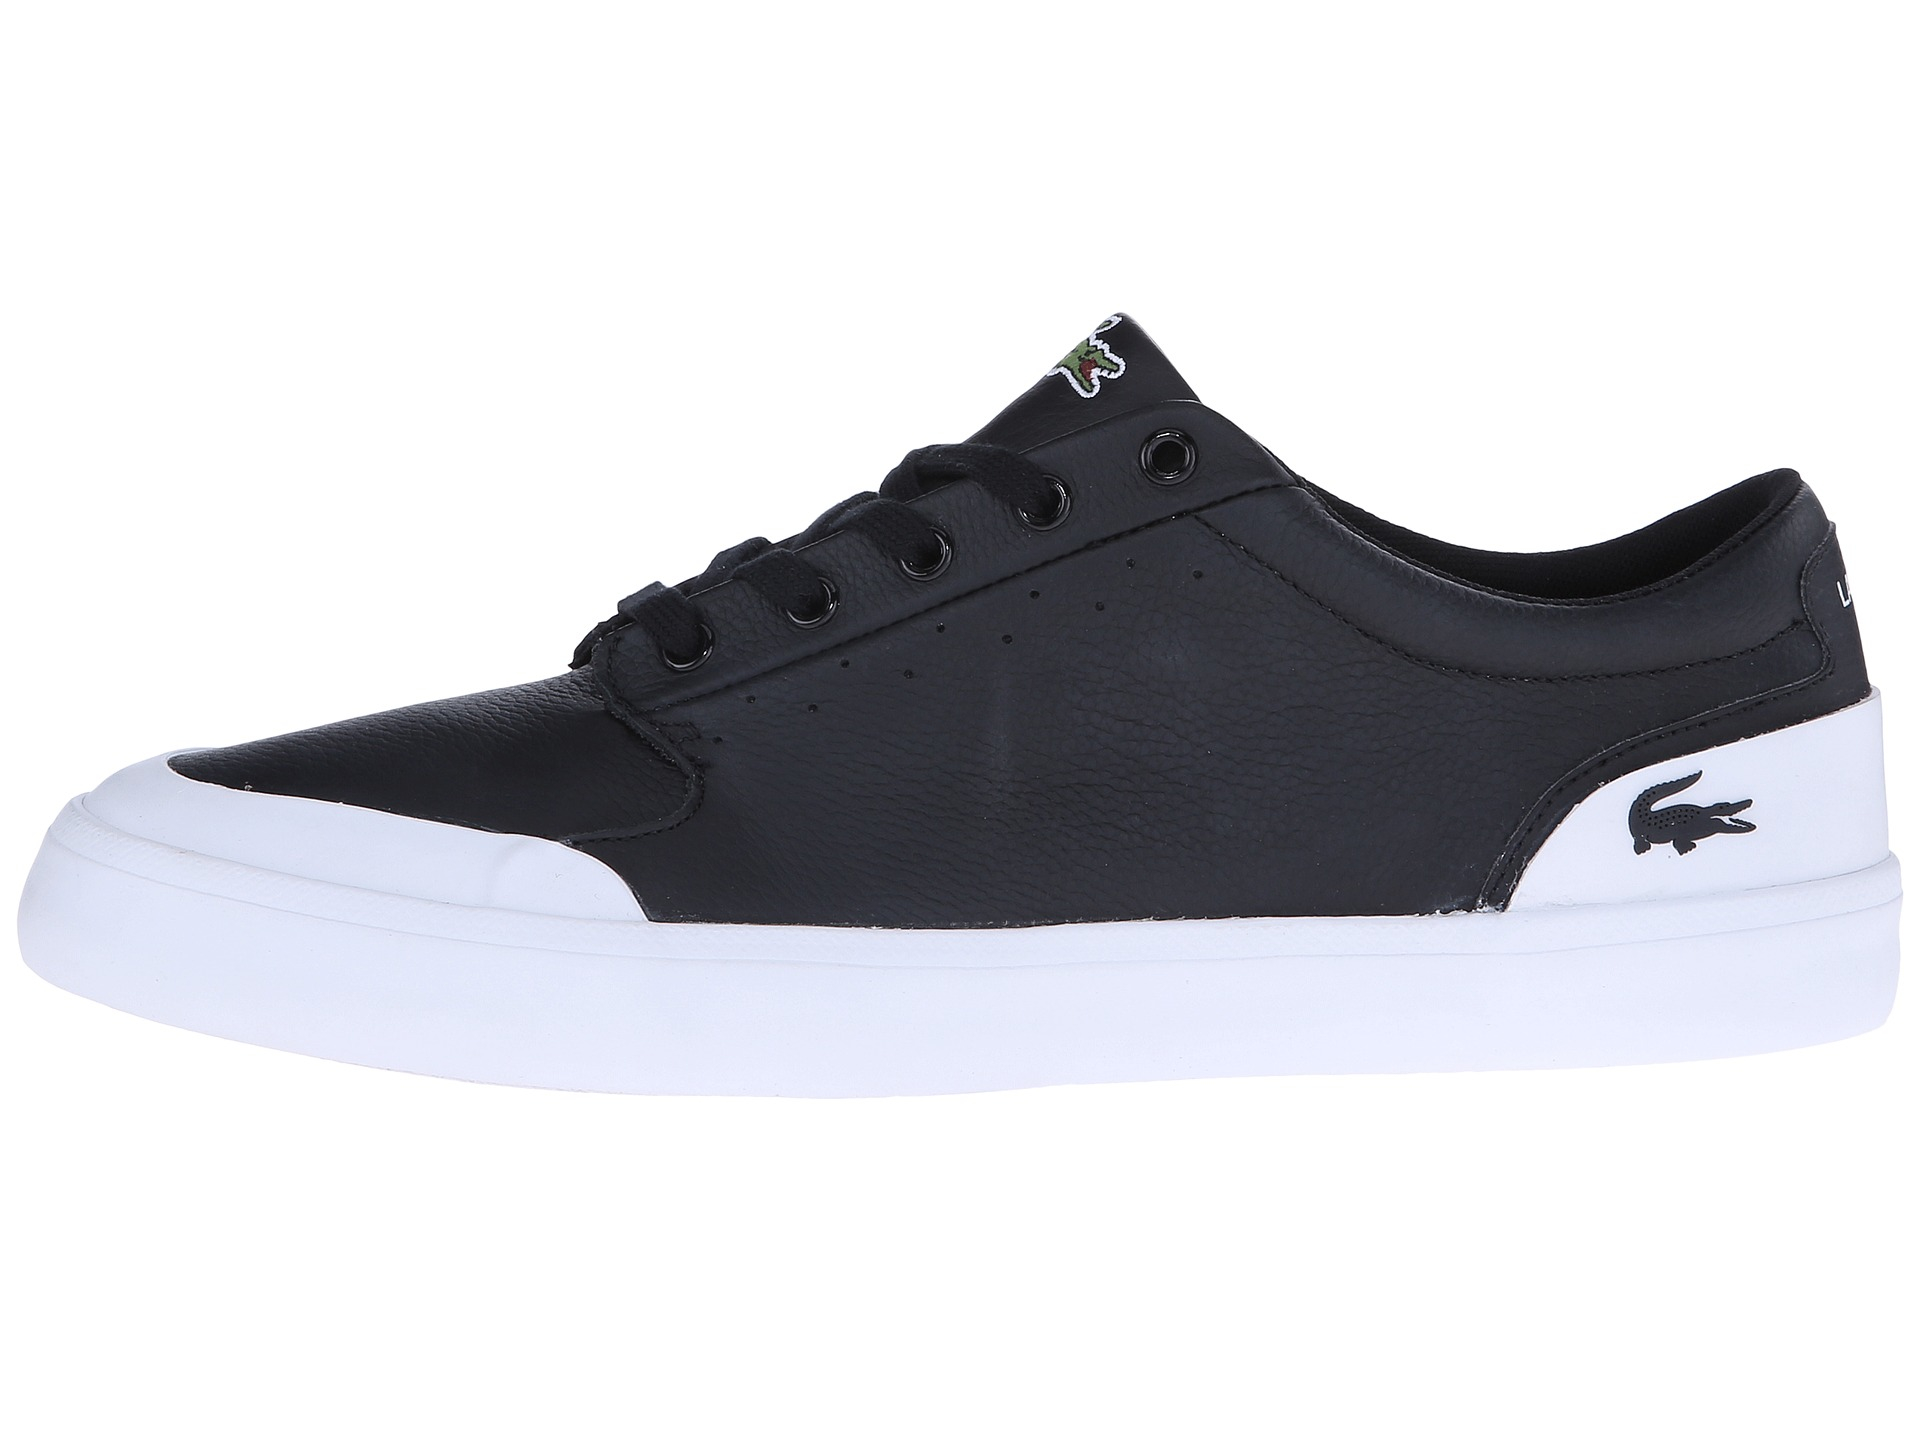 65645d727d1510 Lyst - Lacoste 4hnd.15 116 1 in Black for Men